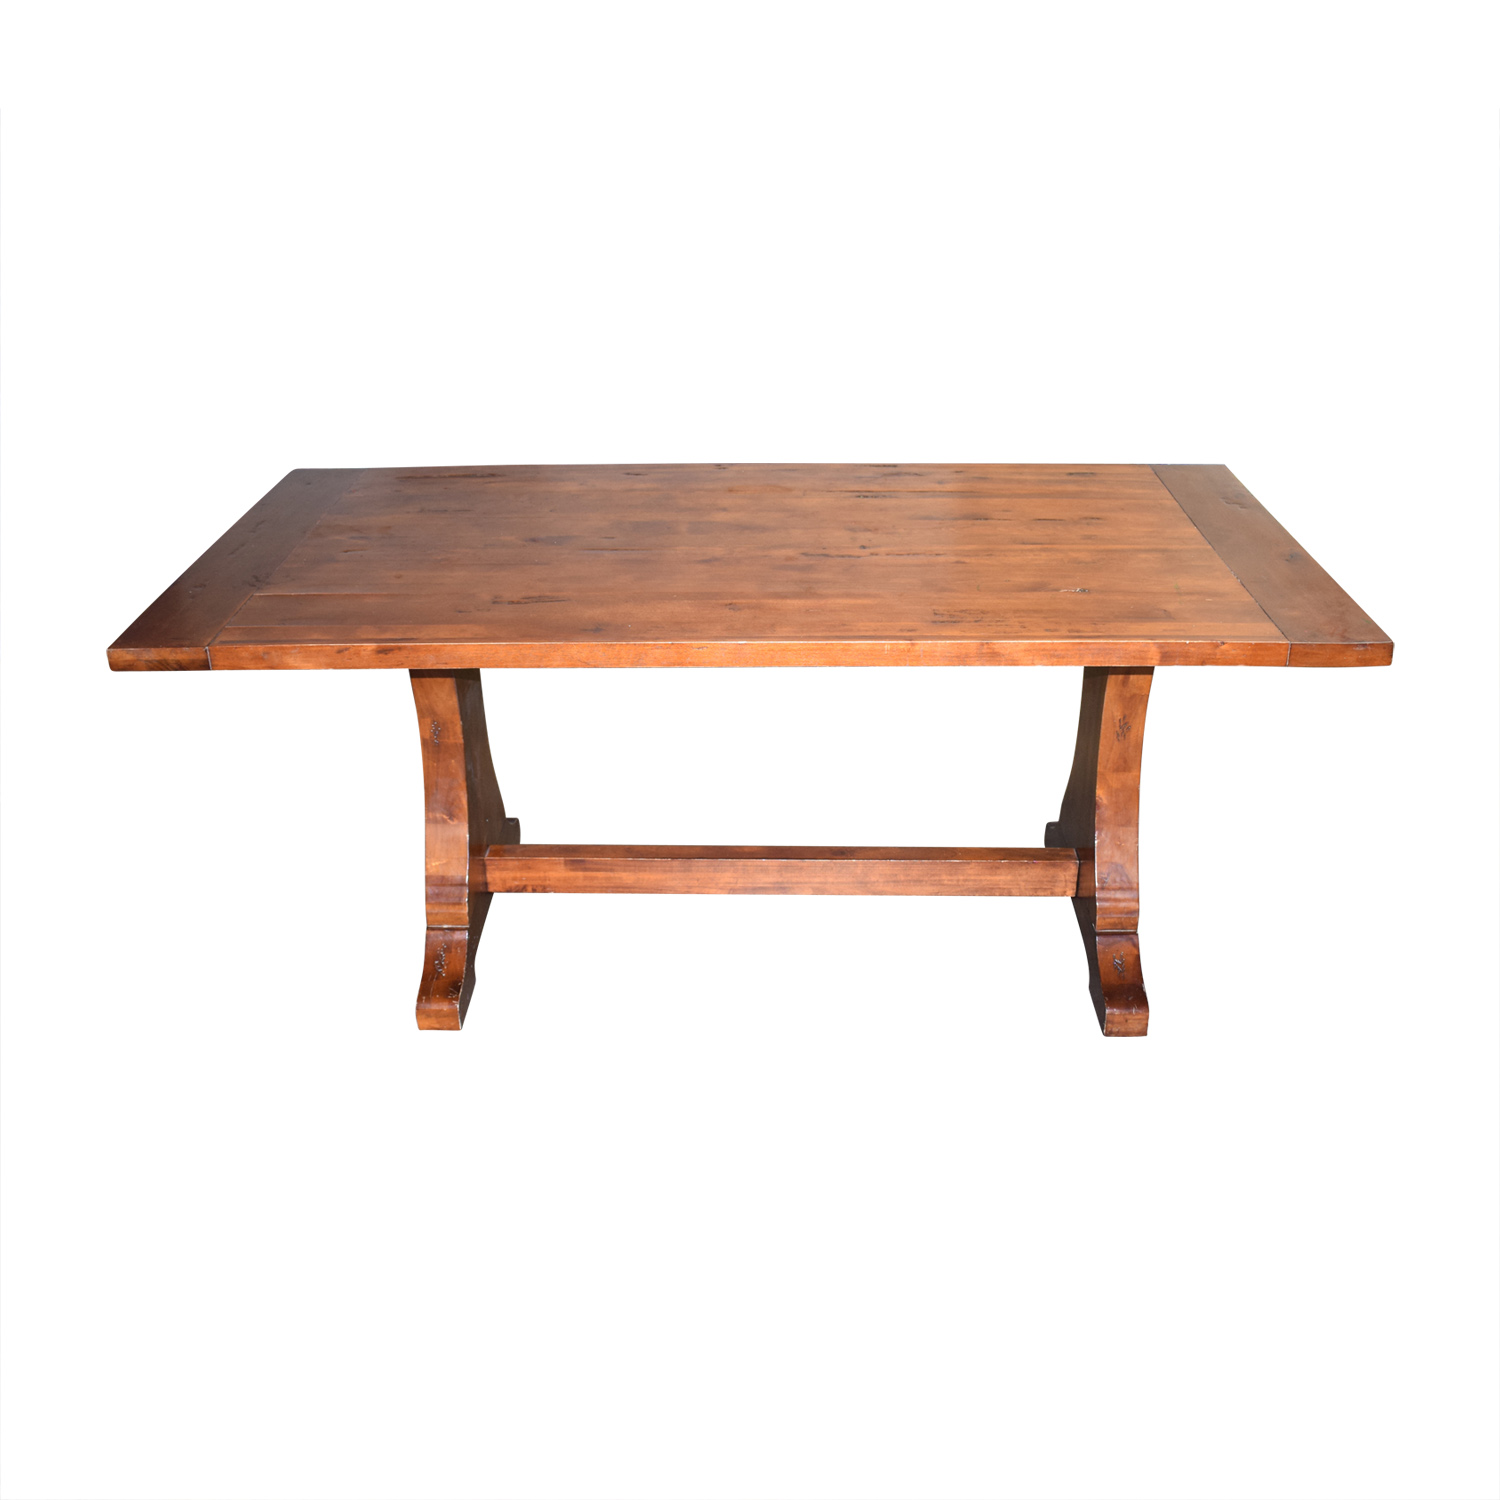 Ballard Designs Ballard Designs Solid Walnut Dining Table